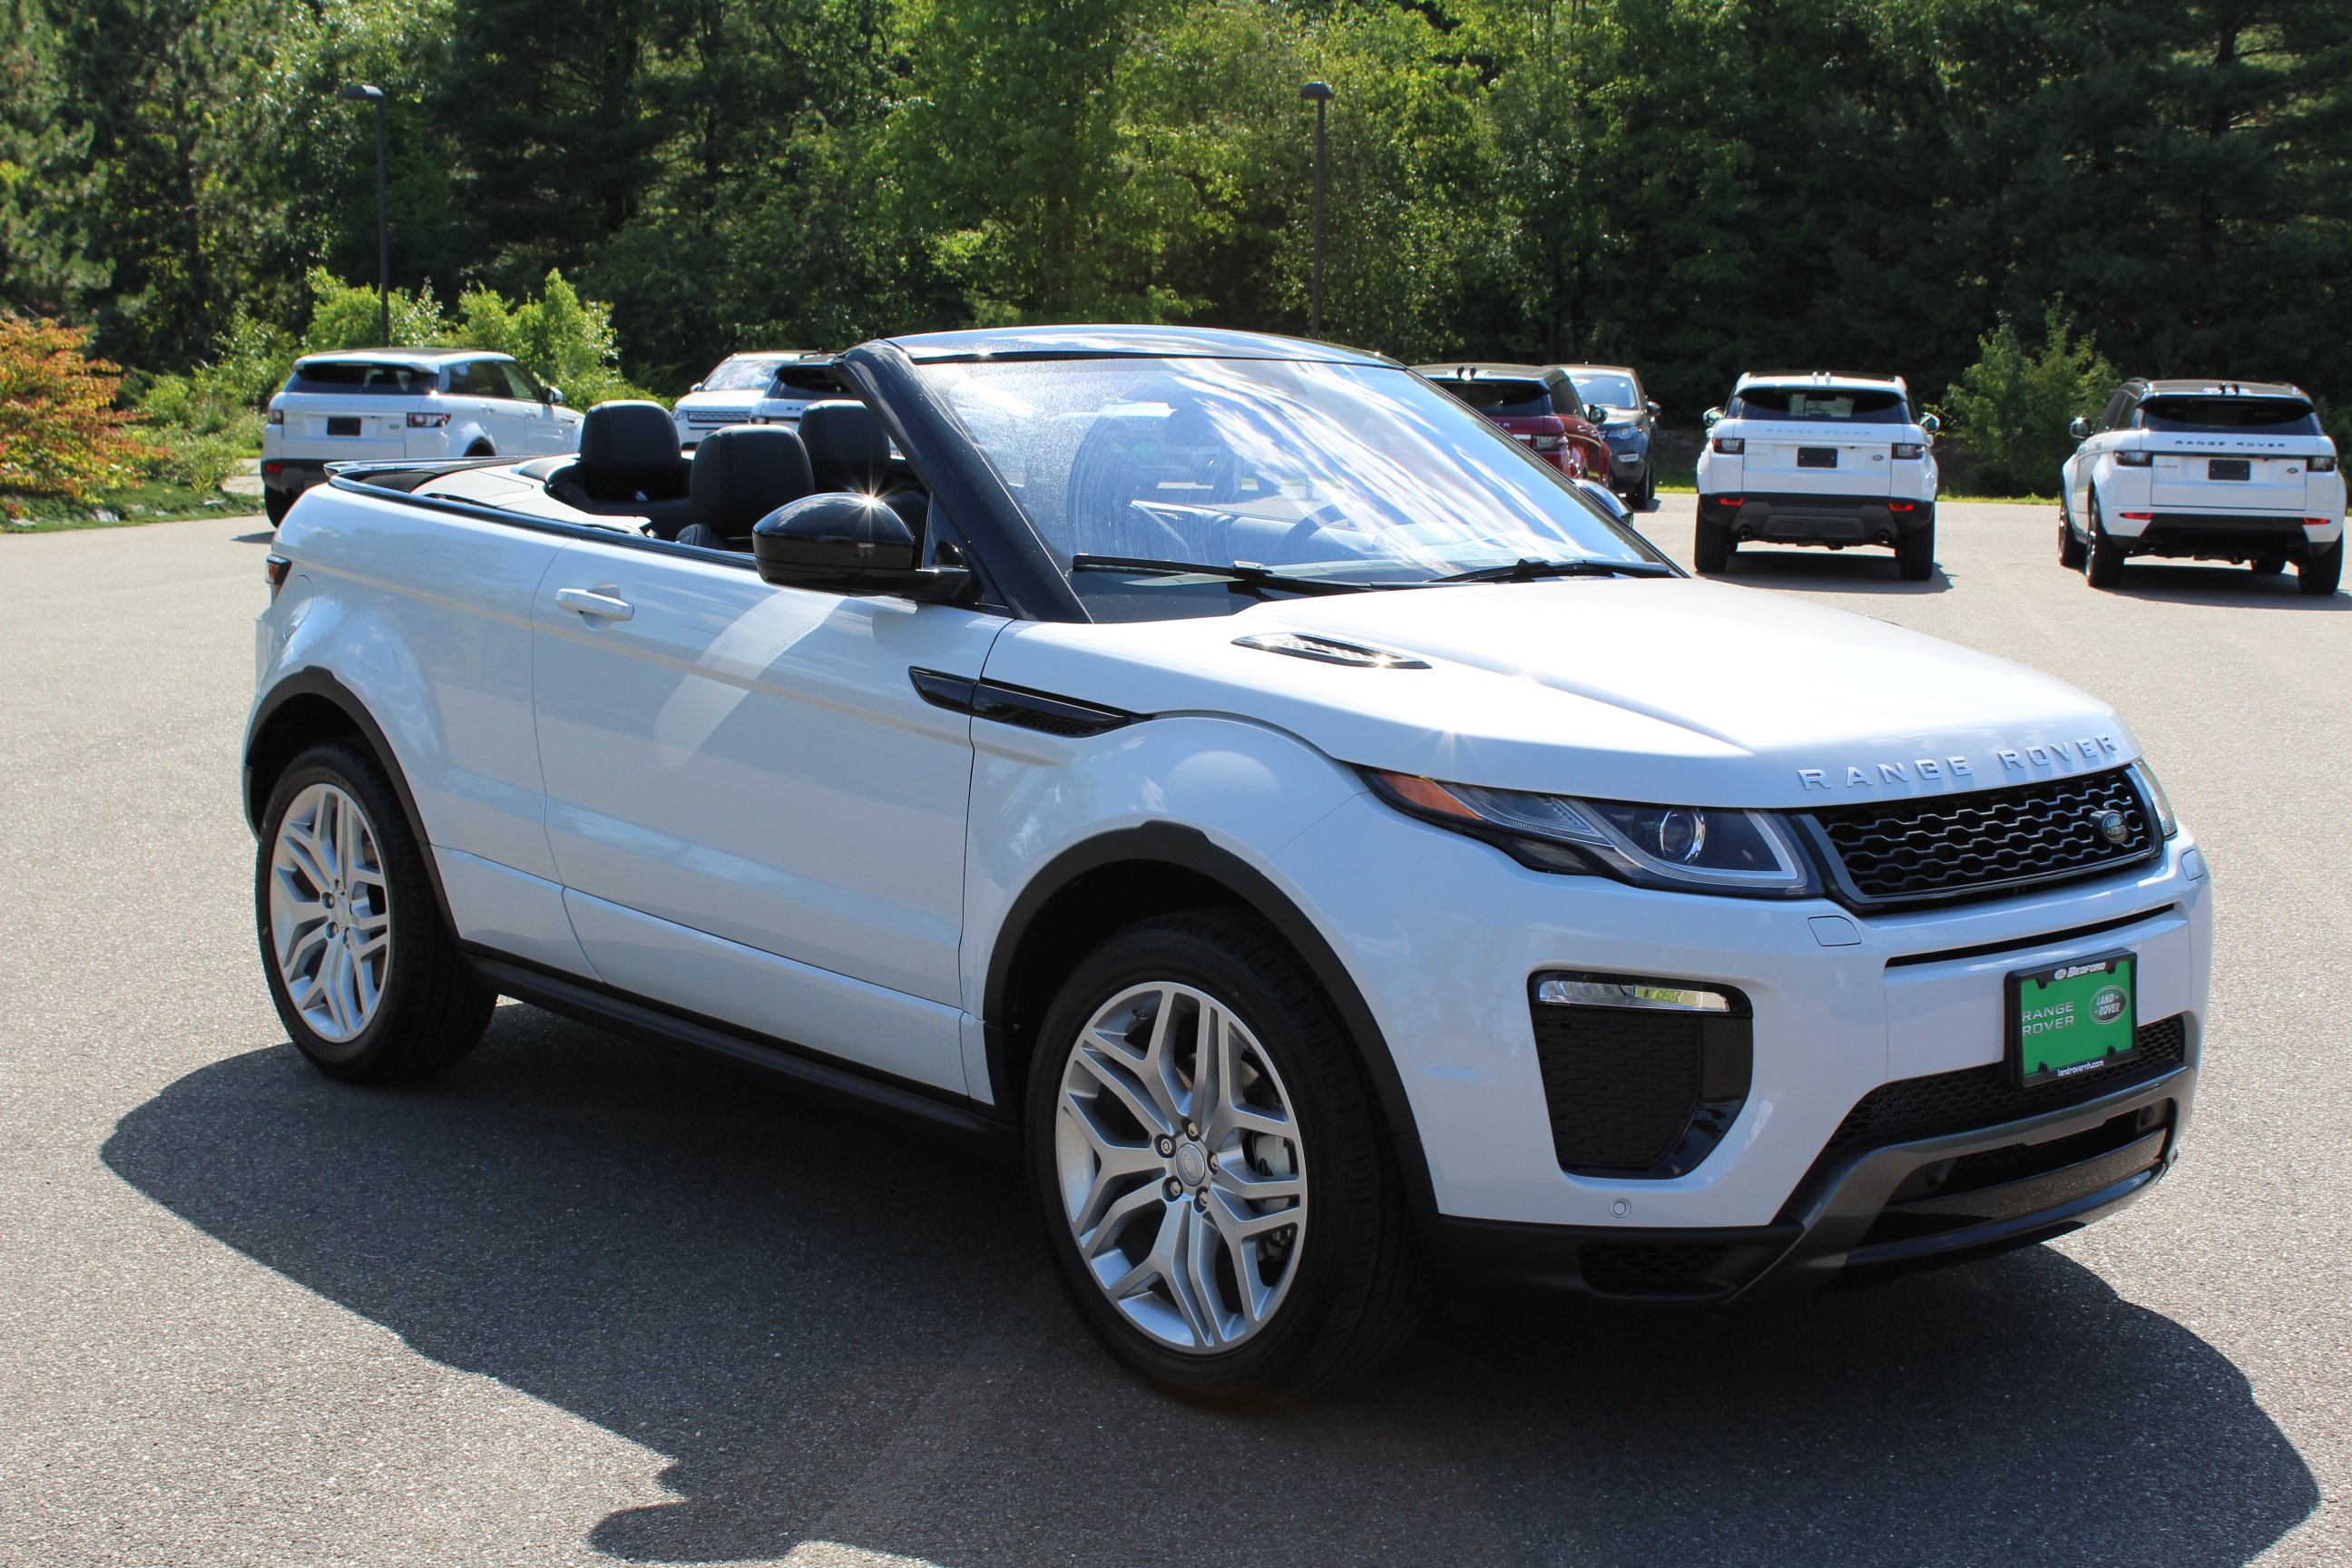 2017 Range Rover Configurations >> 2017 Range Rover Configurations Best Upcoming Car Release 2020